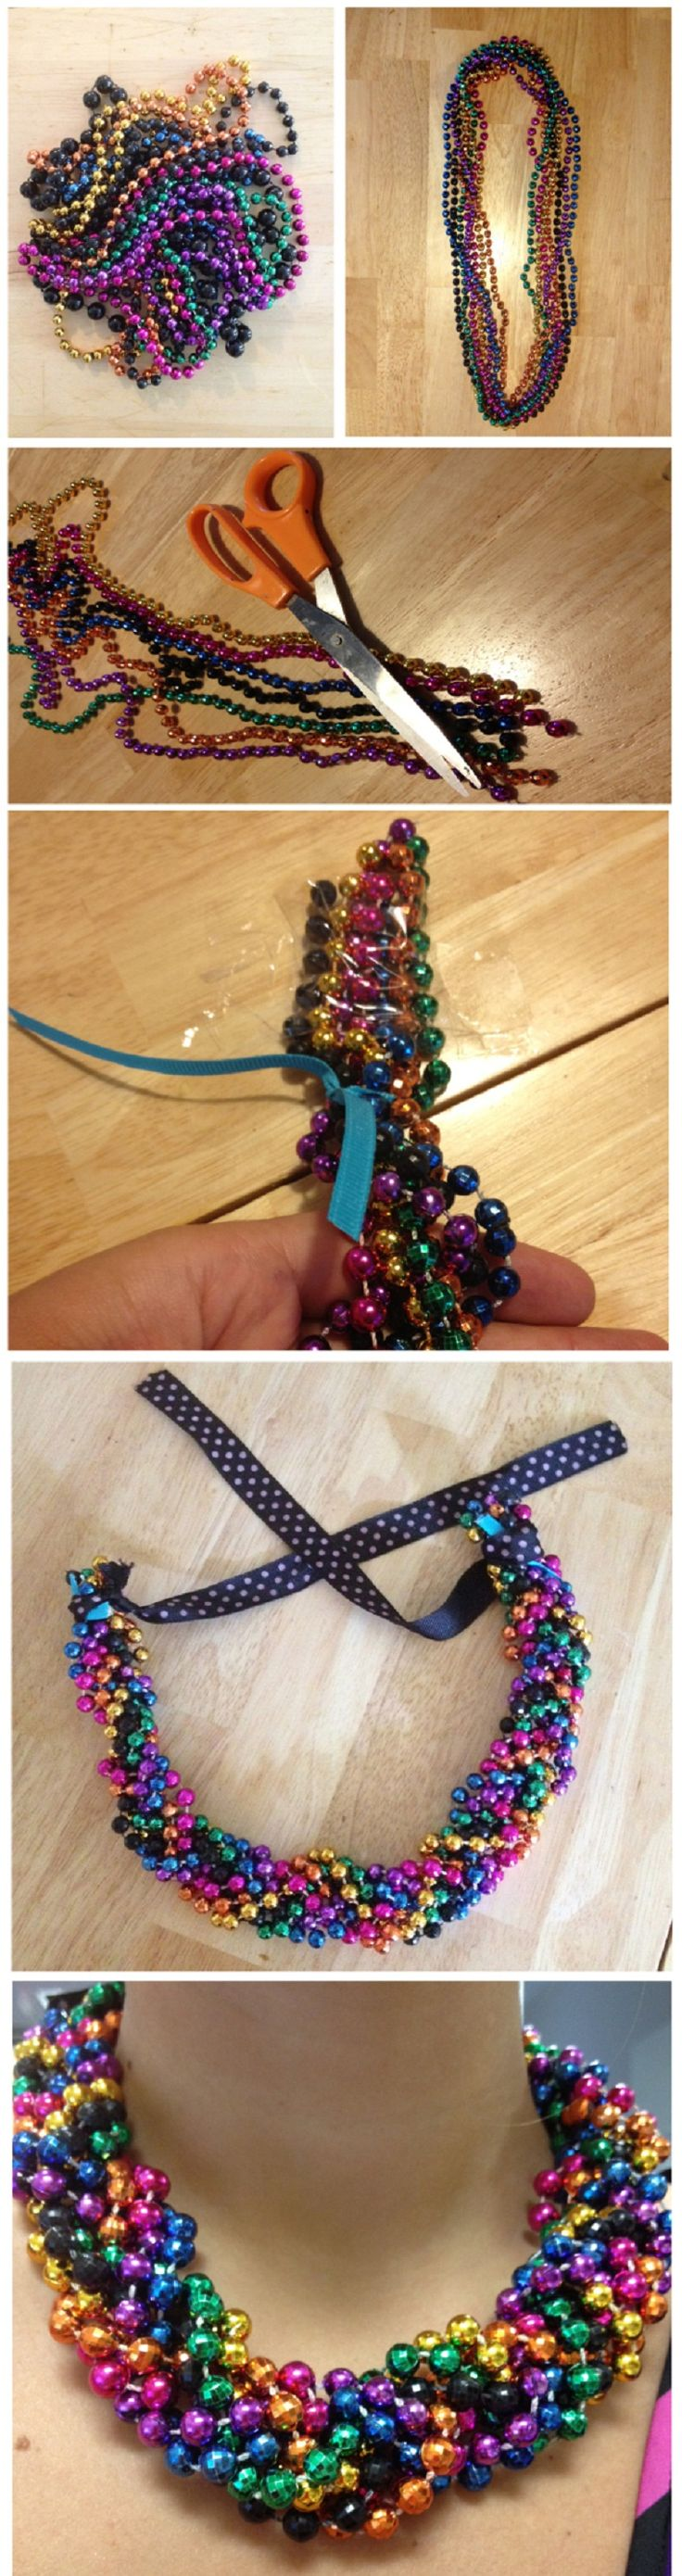 Diy Mardi Gras Statement Necklace -- Cool Things to do with your Mardi Gras Beads : allwomenstalk #Mardi_Gras #beads